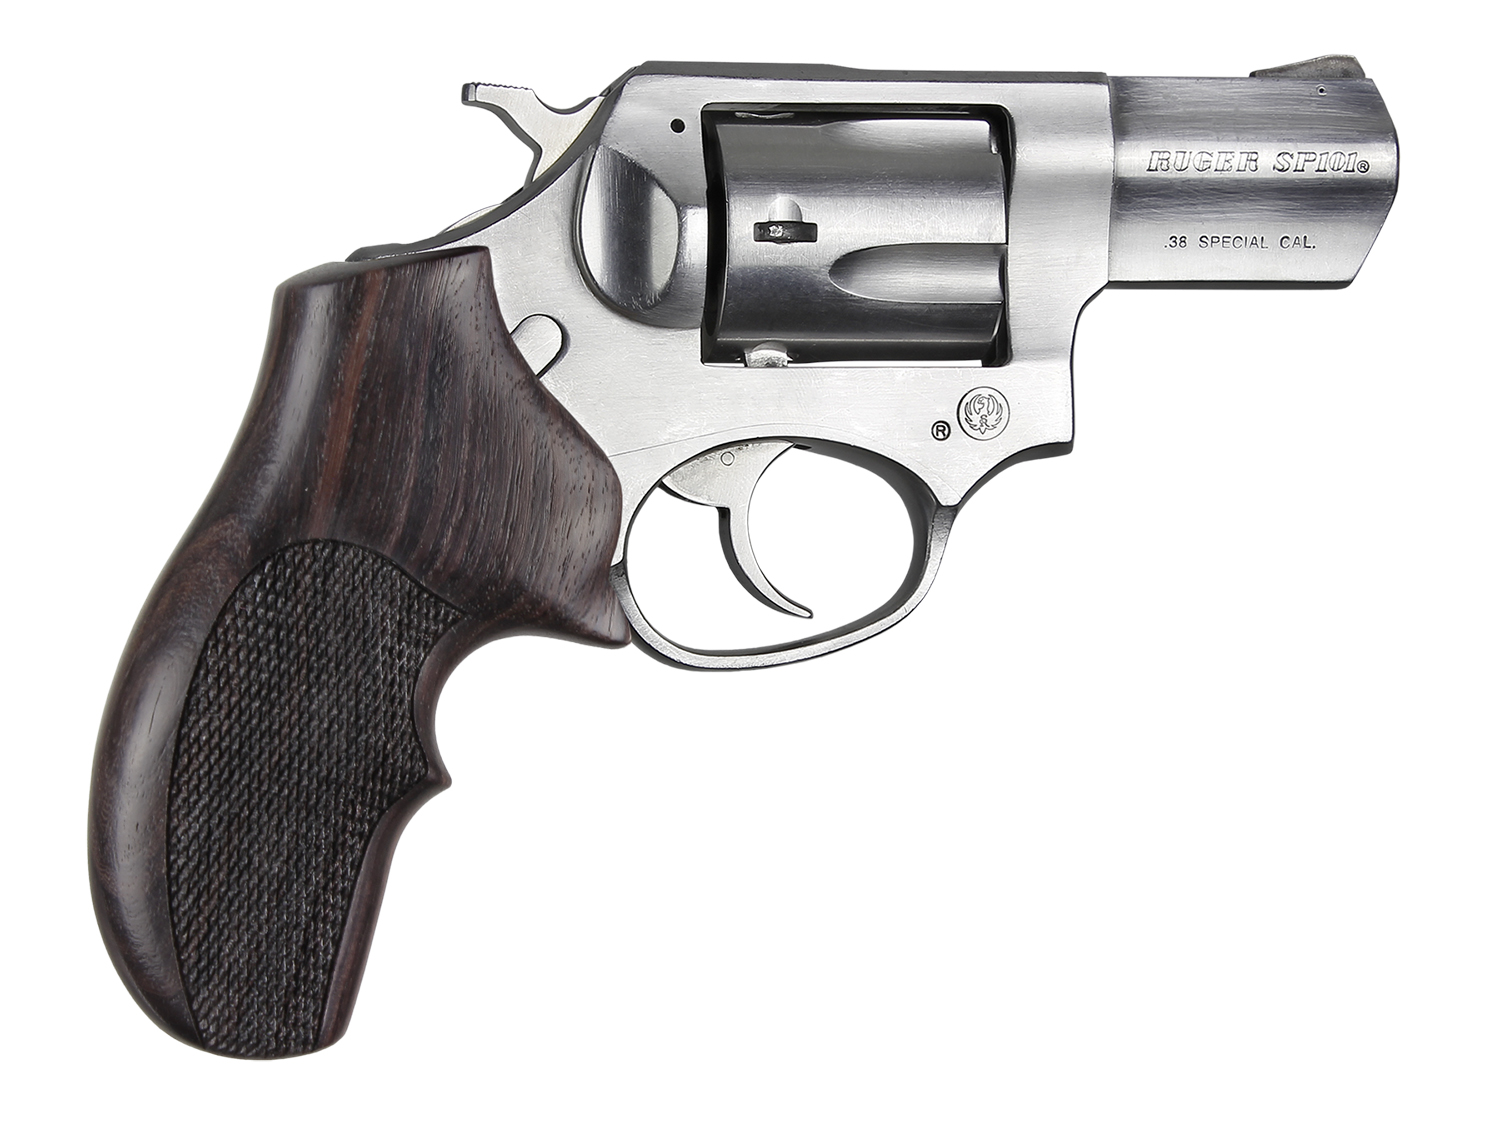 ROSEWOOD TOP FINGER GROOVE CHECKERED REVOLVER GRIP - RUGER SP101